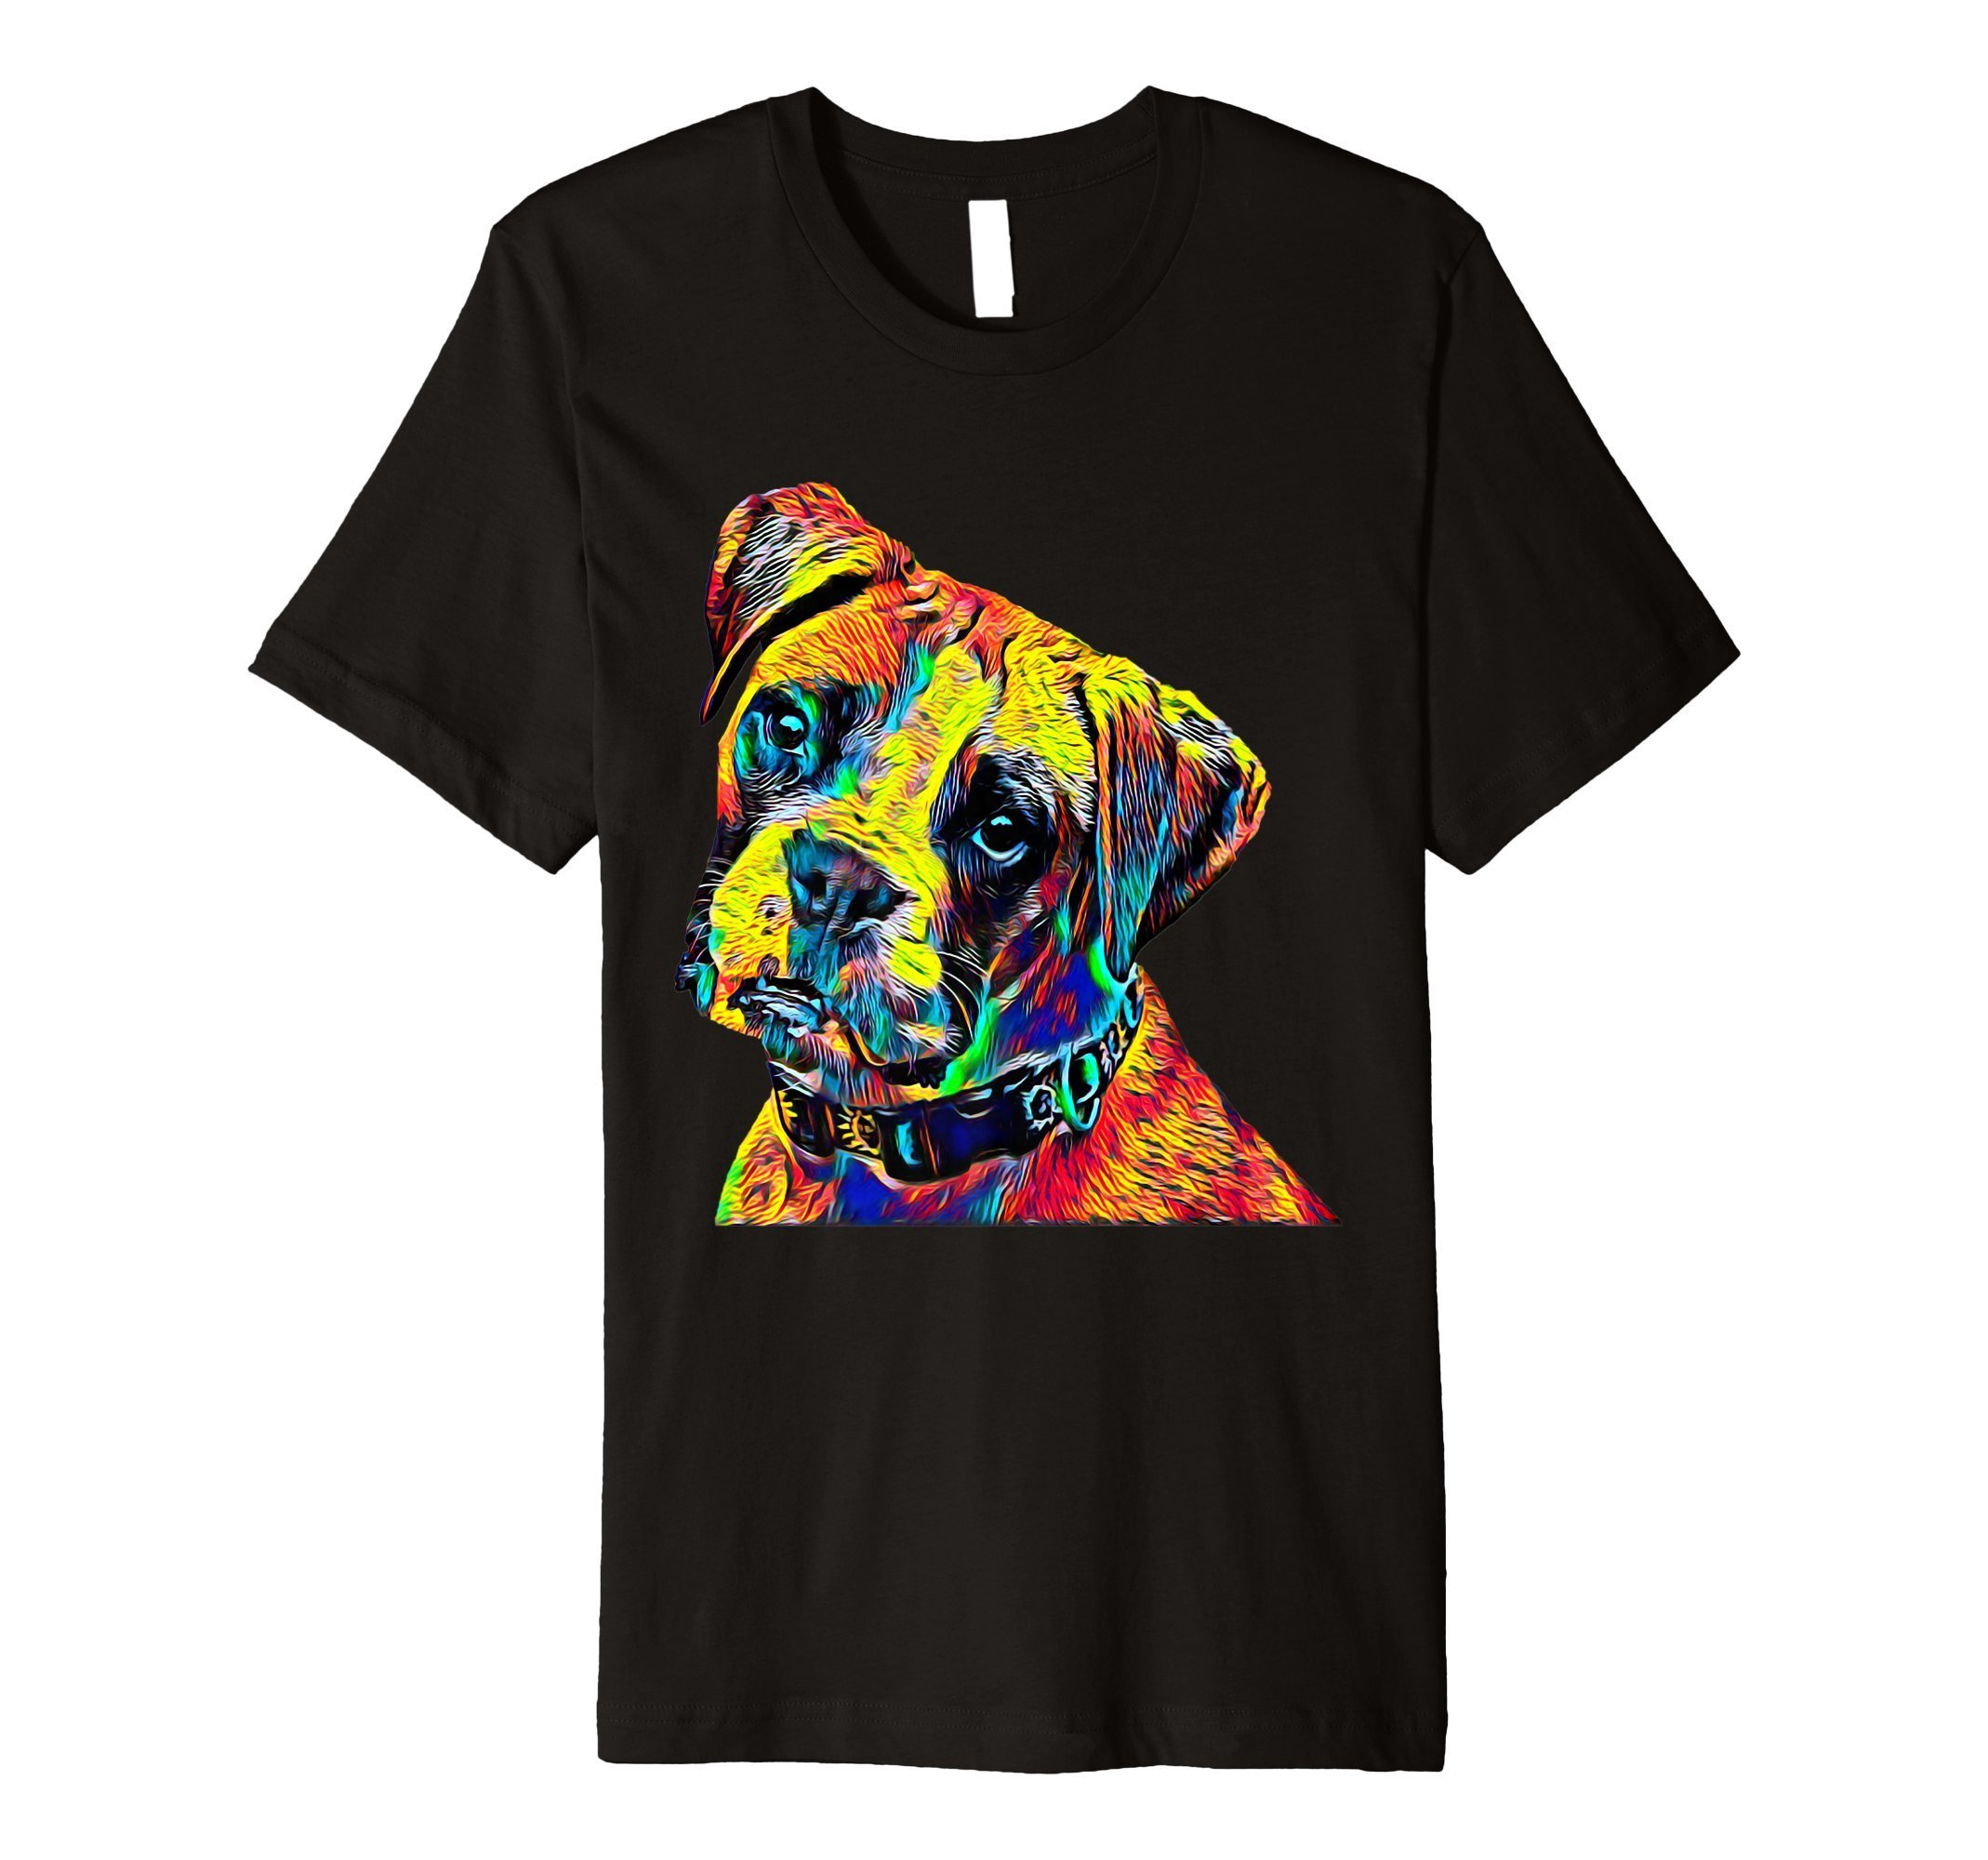 Dog T-Shirt Boxer Breed Cool Vintage Tee For Animal Lovers